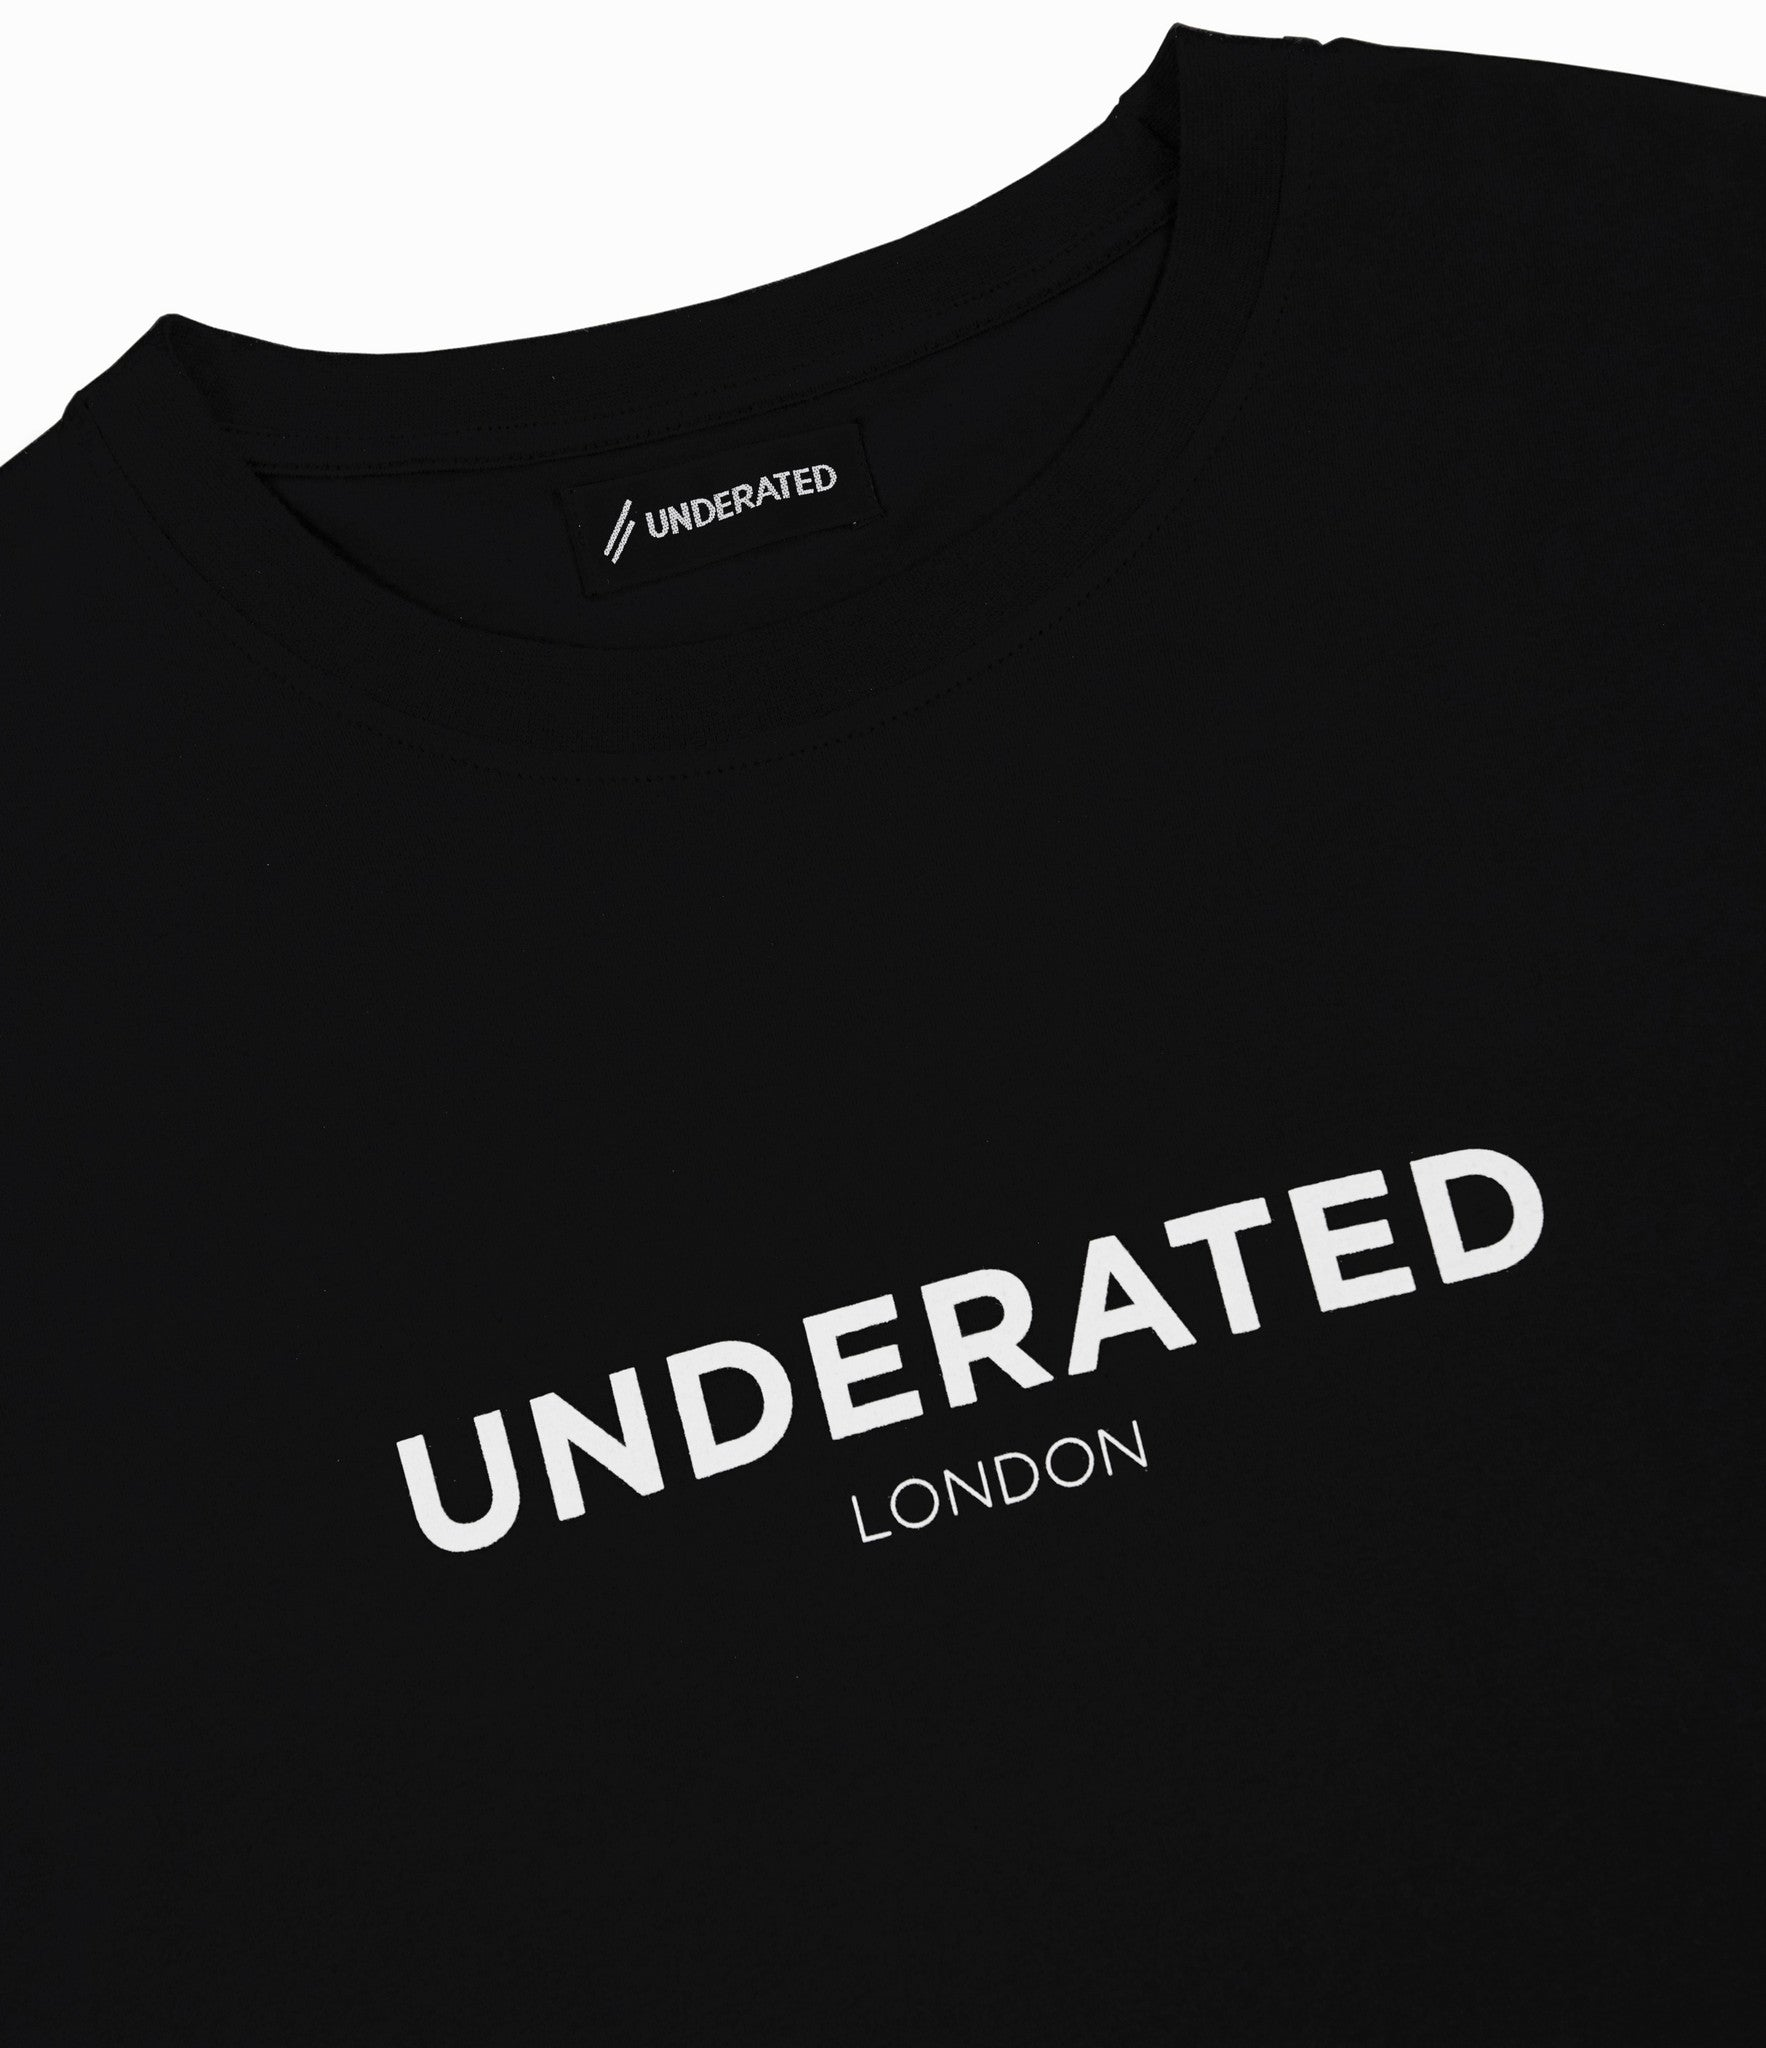 TS404 Print Tee - Black - underated london - underatedco - 2